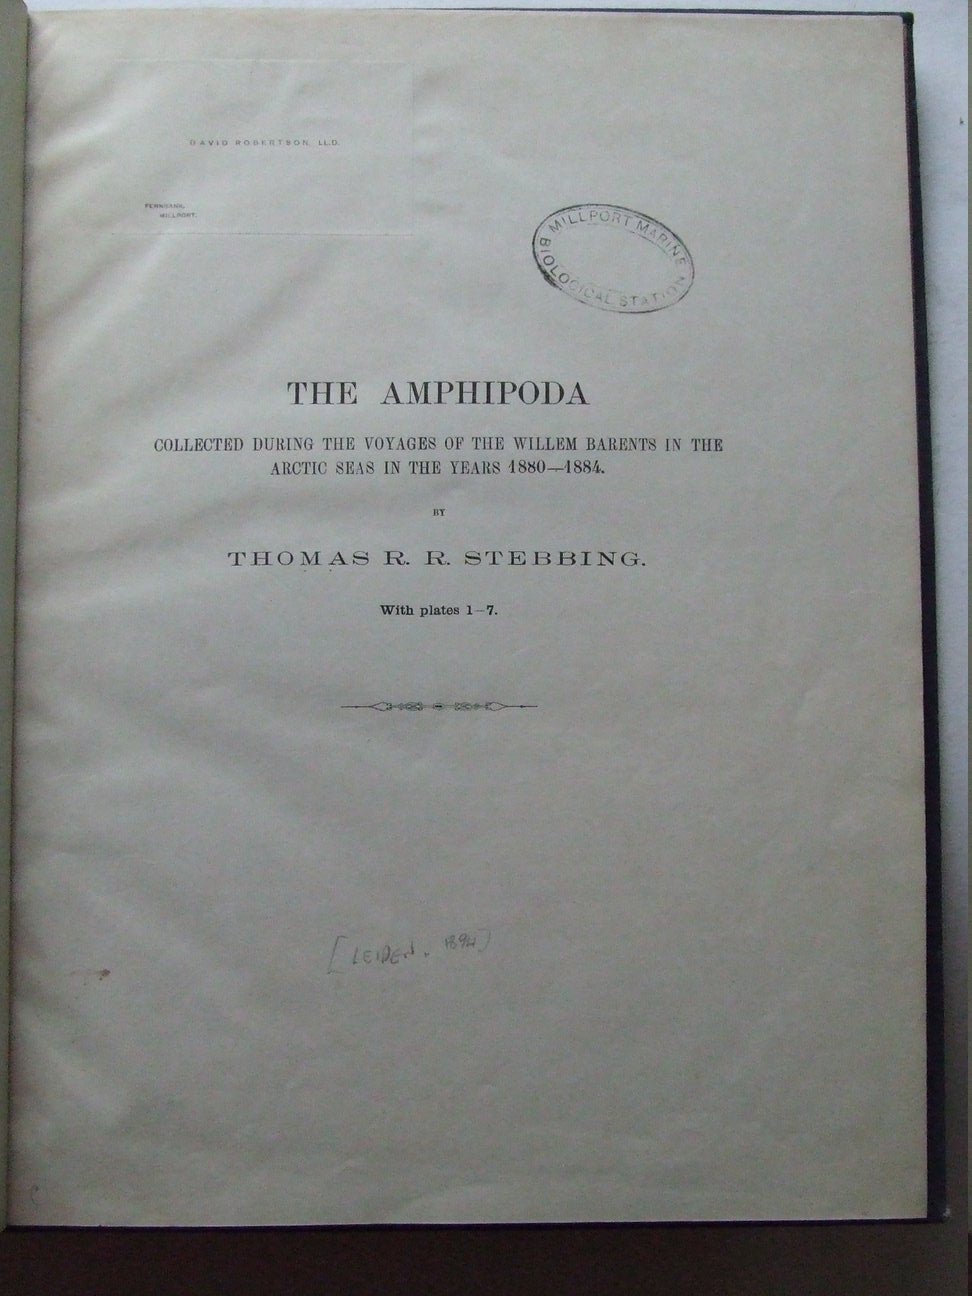 The Amphipoda collected during the voyages of the Willem Barents in the Arctic Seas in the years 1880-1884